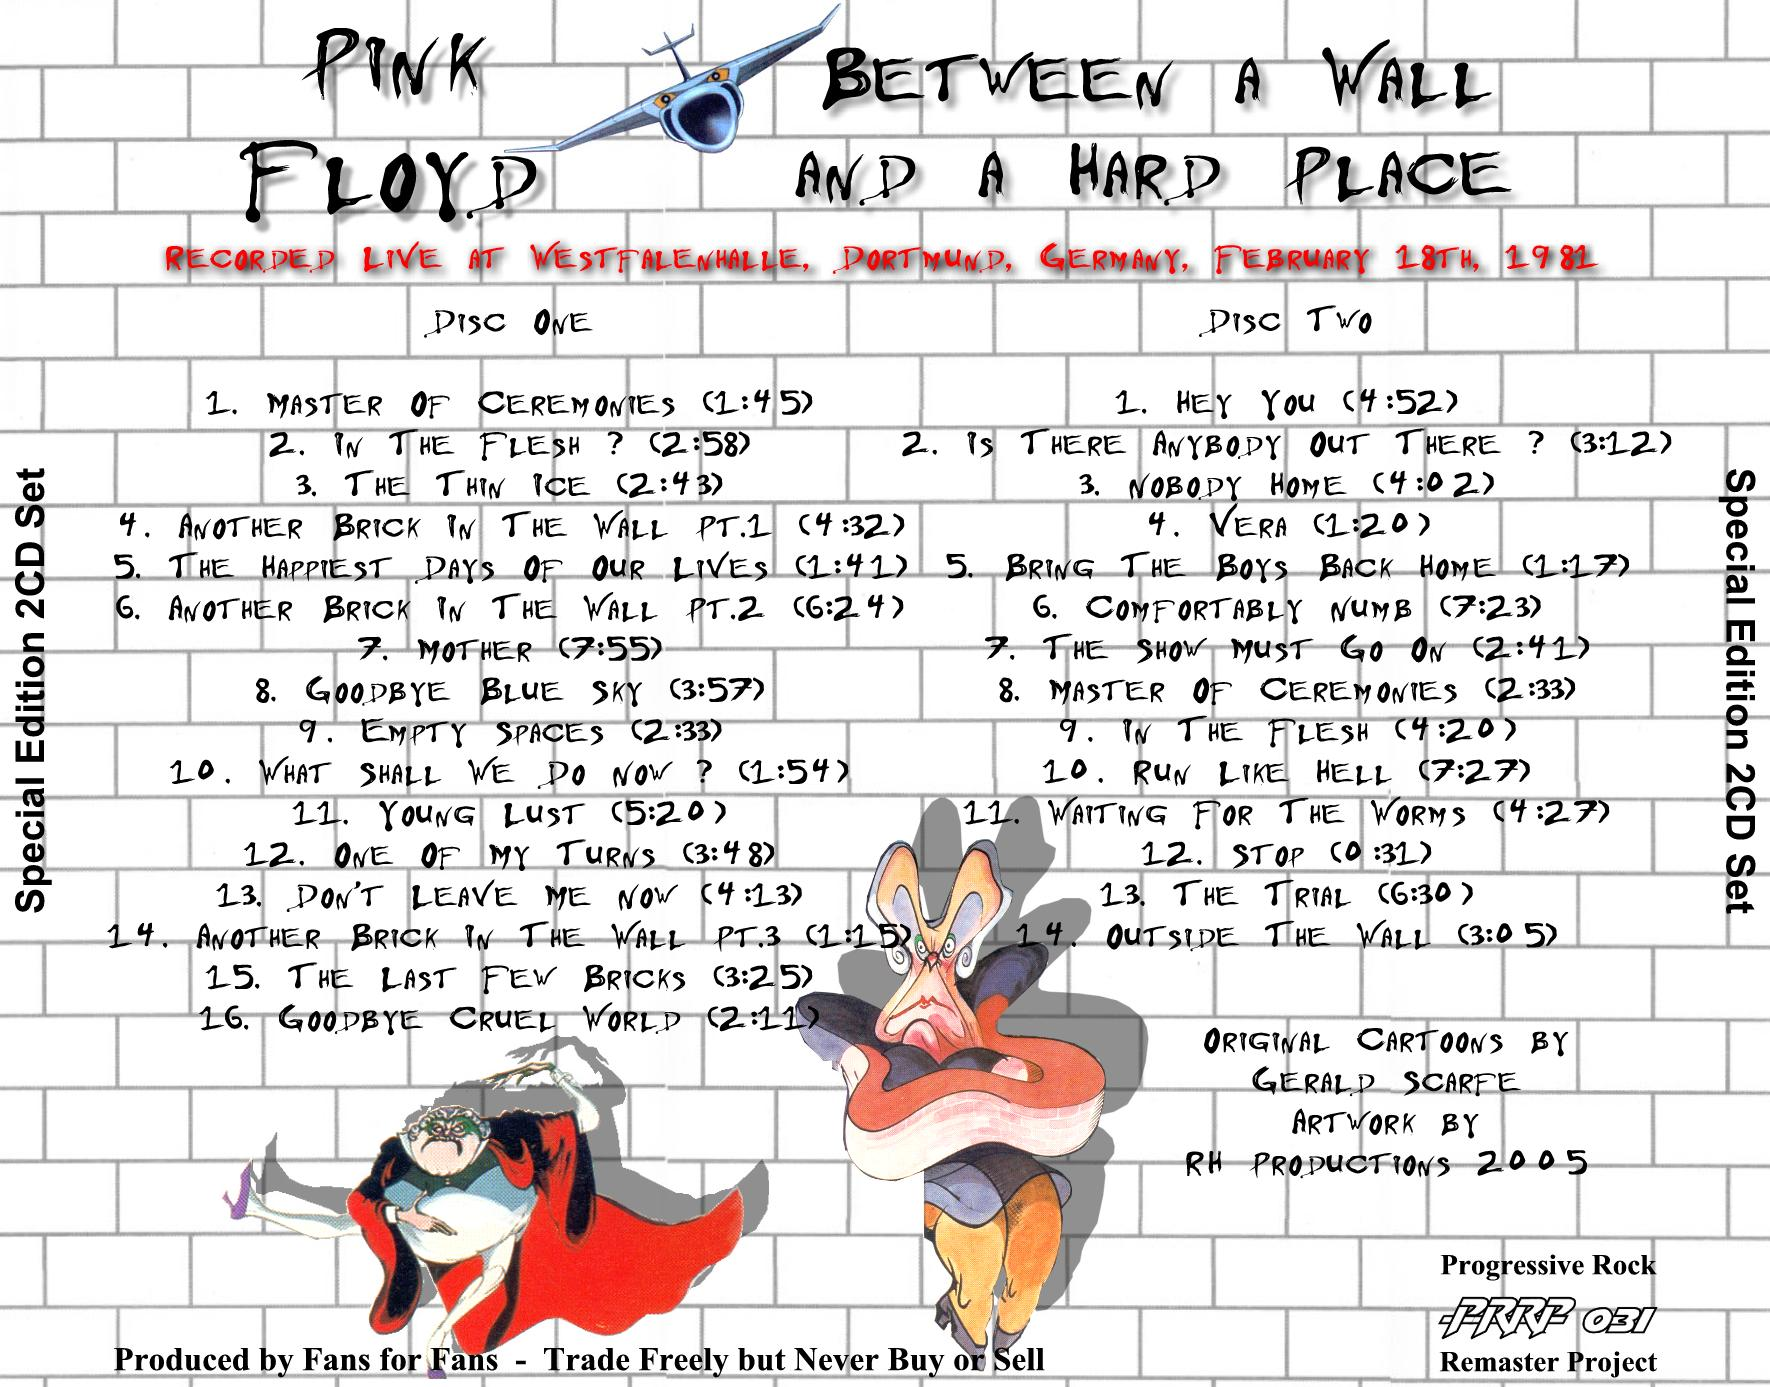 Lossless Search Results for Pink Floyd - PRRP031 Between a